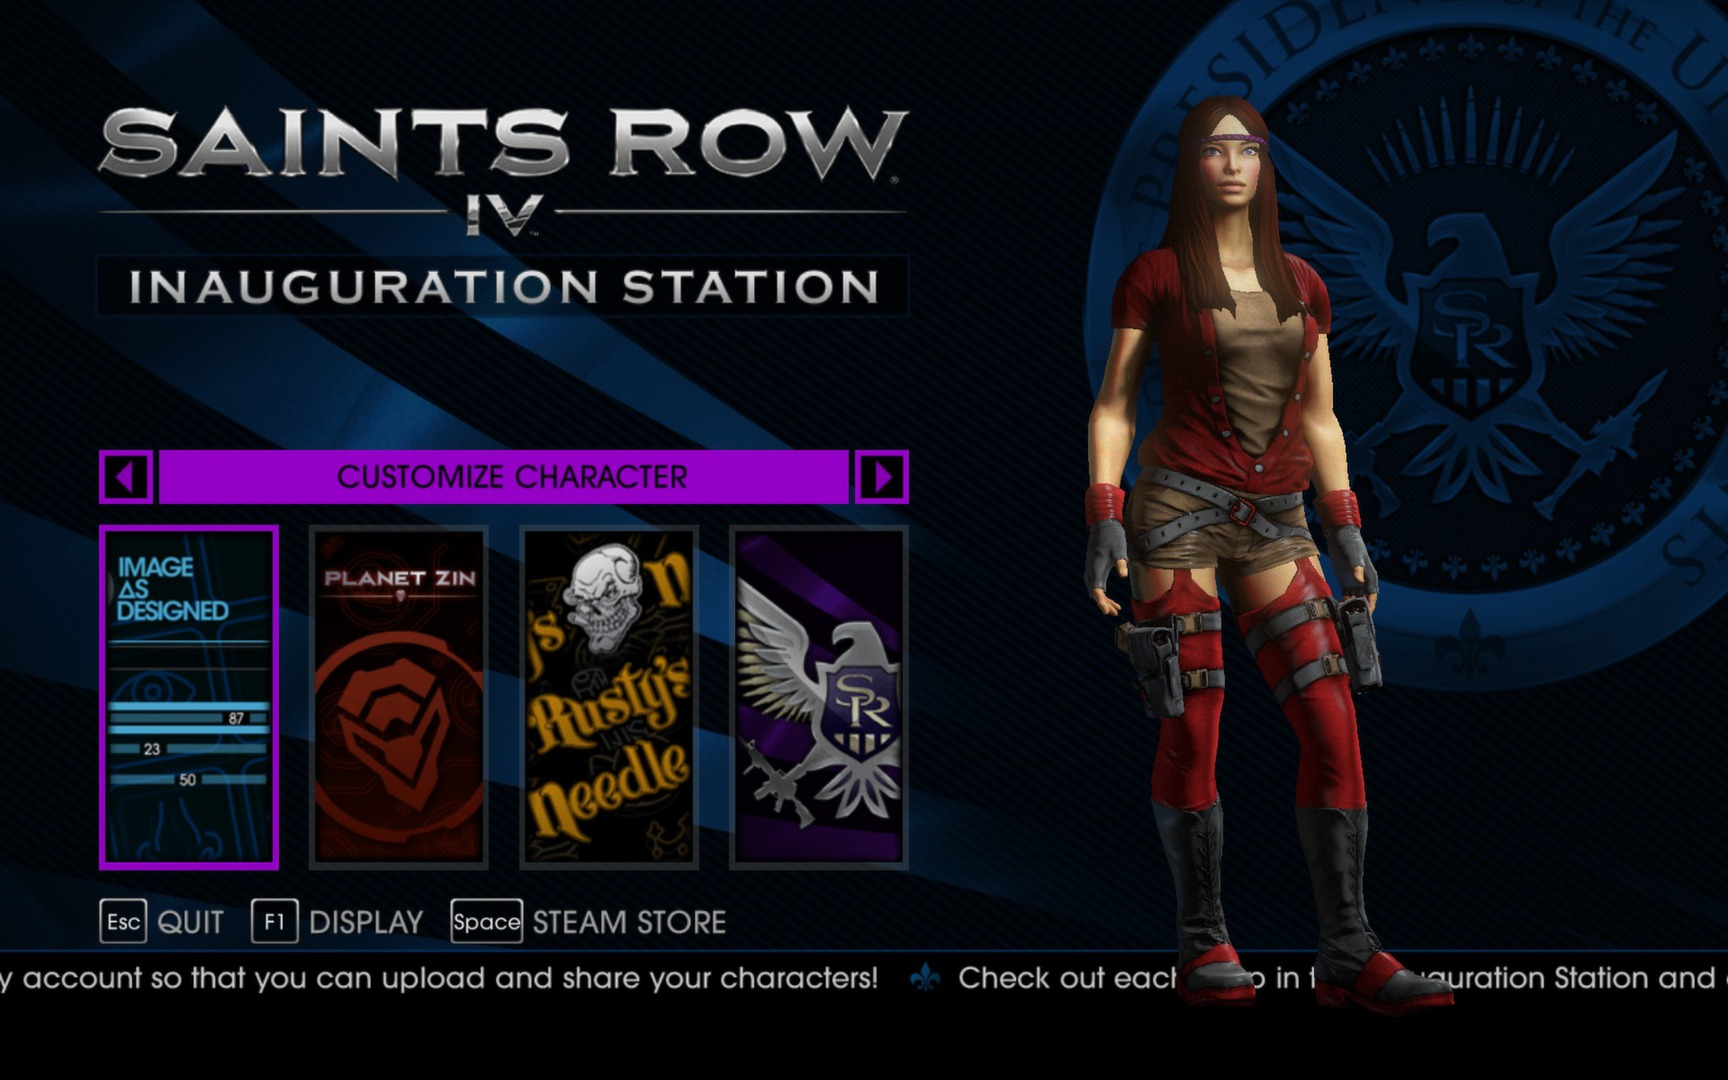 Saints Row Anime Character Creation : Create your saints row iv character early with